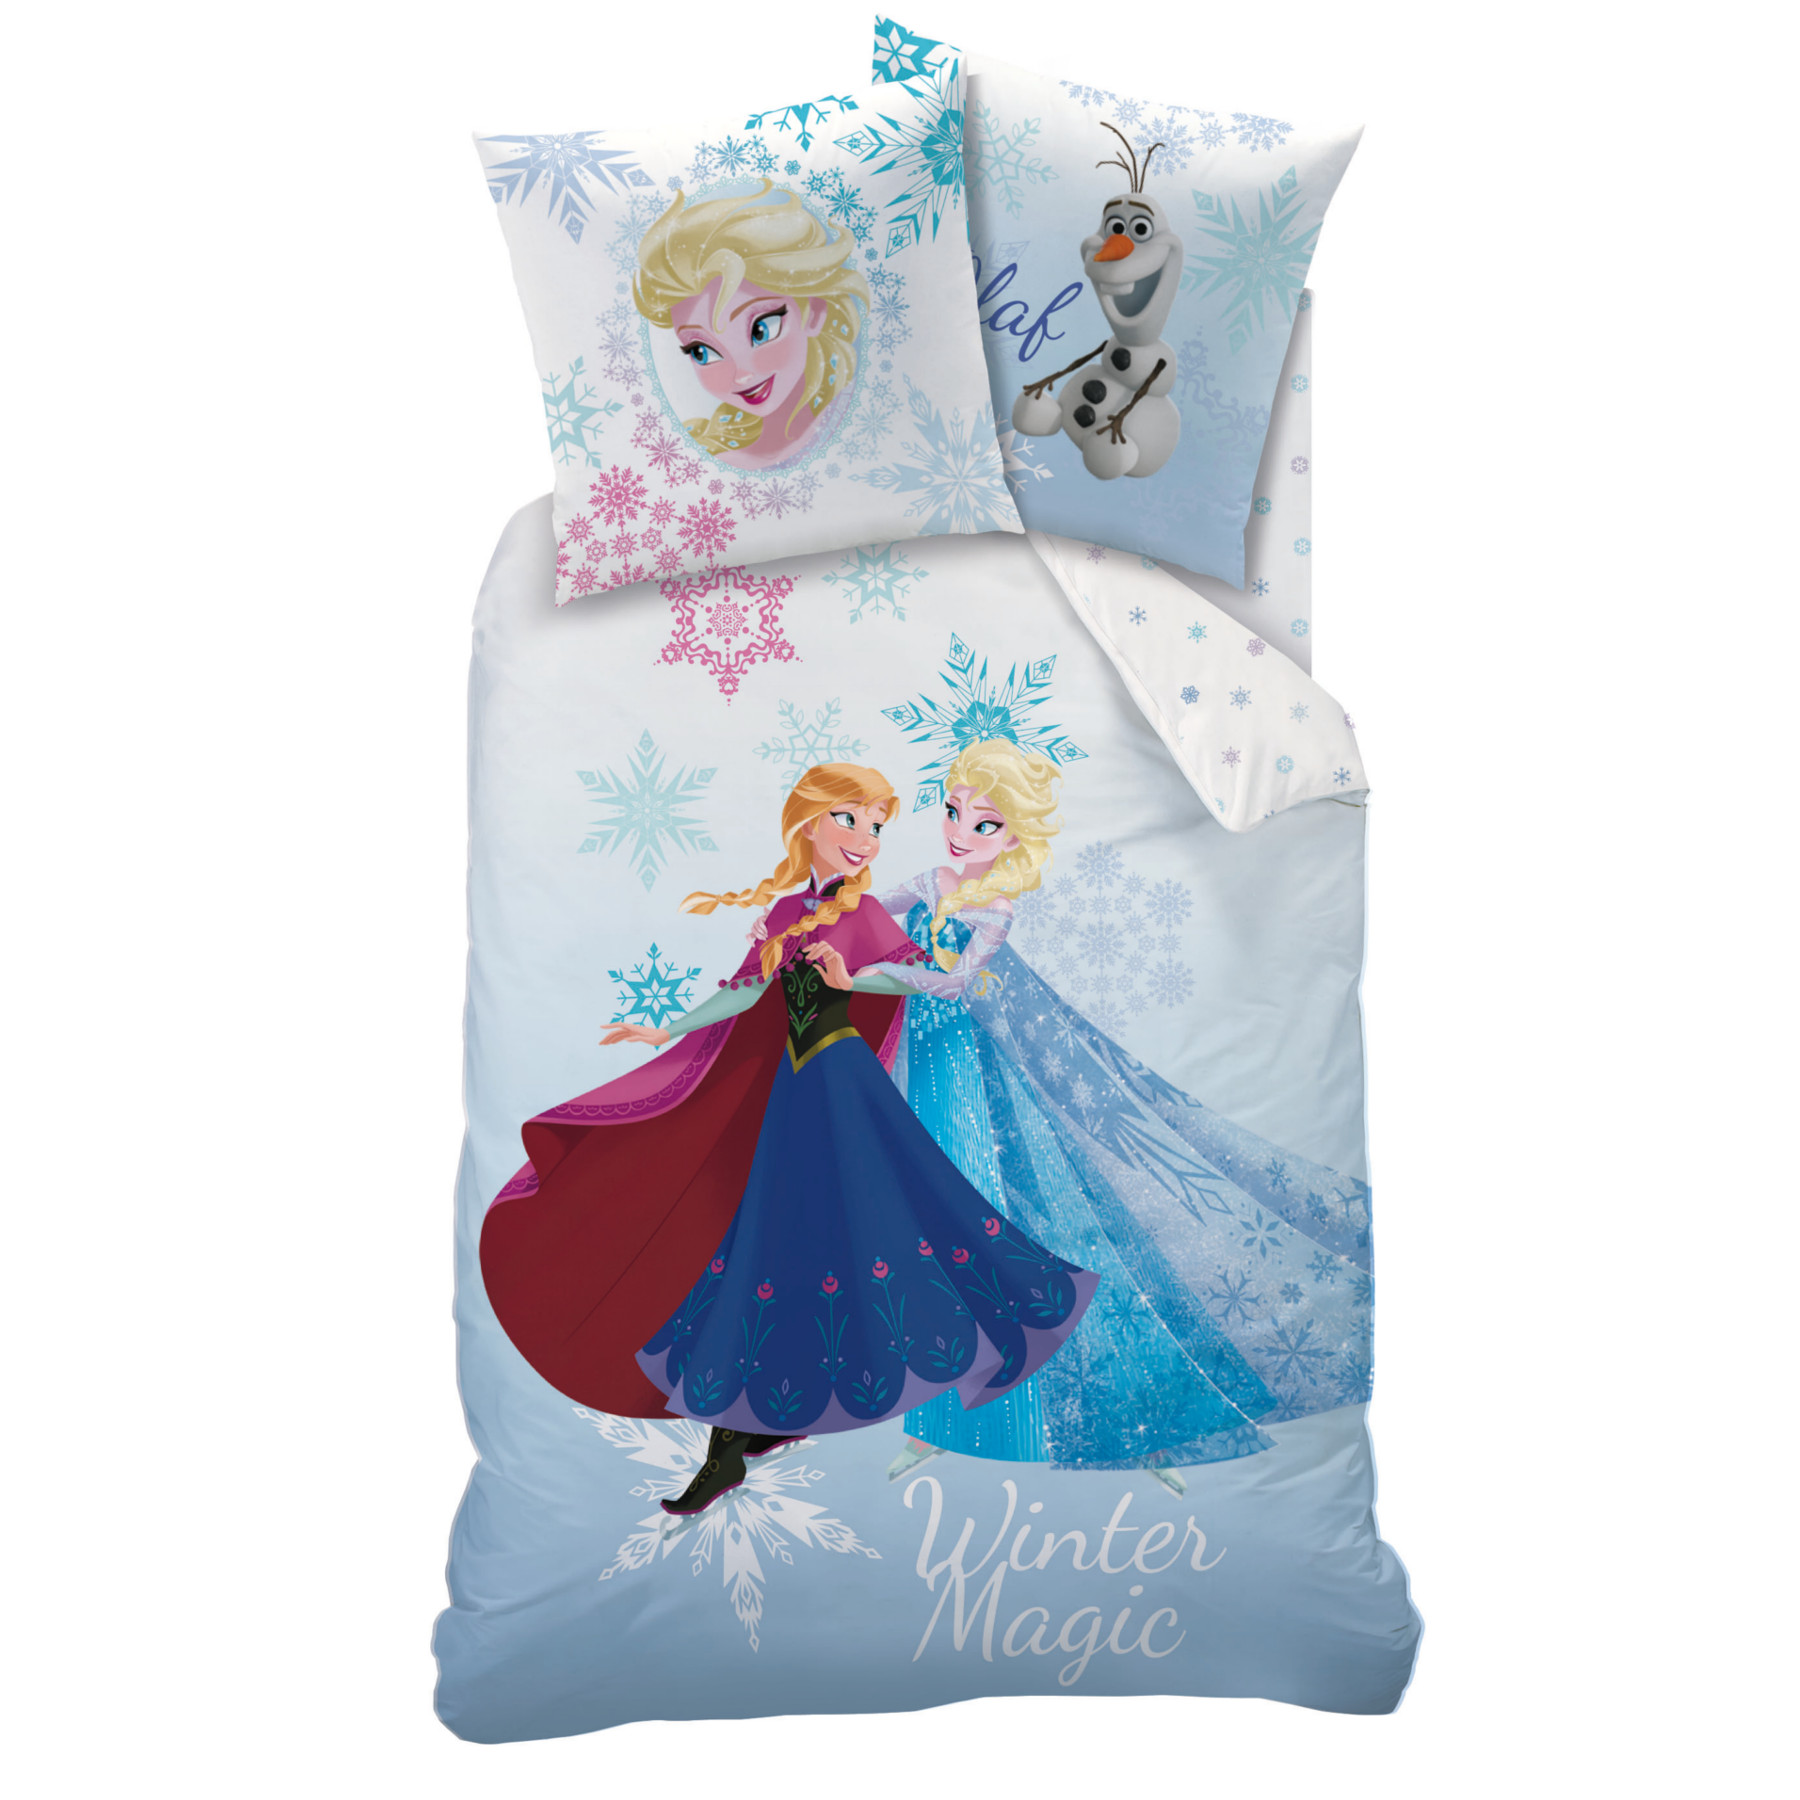 reine des neiges winter parure 140 x 200 coton r f fro427534 frozen reine des neiges. Black Bedroom Furniture Sets. Home Design Ideas